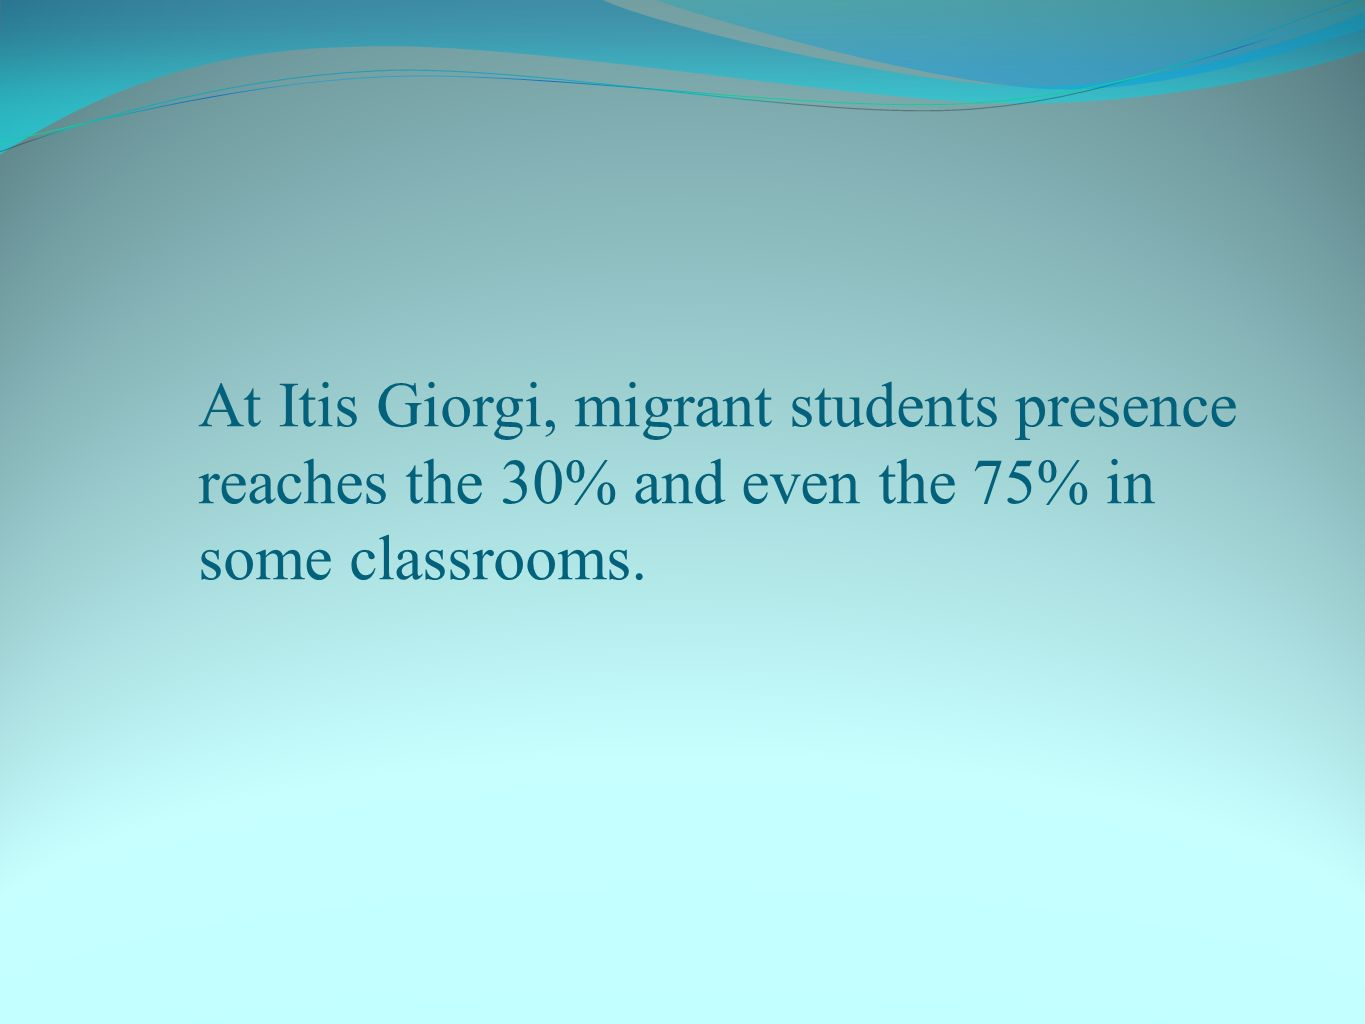 At Itis Giorgi, migrant students presence reaches the 30% and even the 75% in some classrooms.